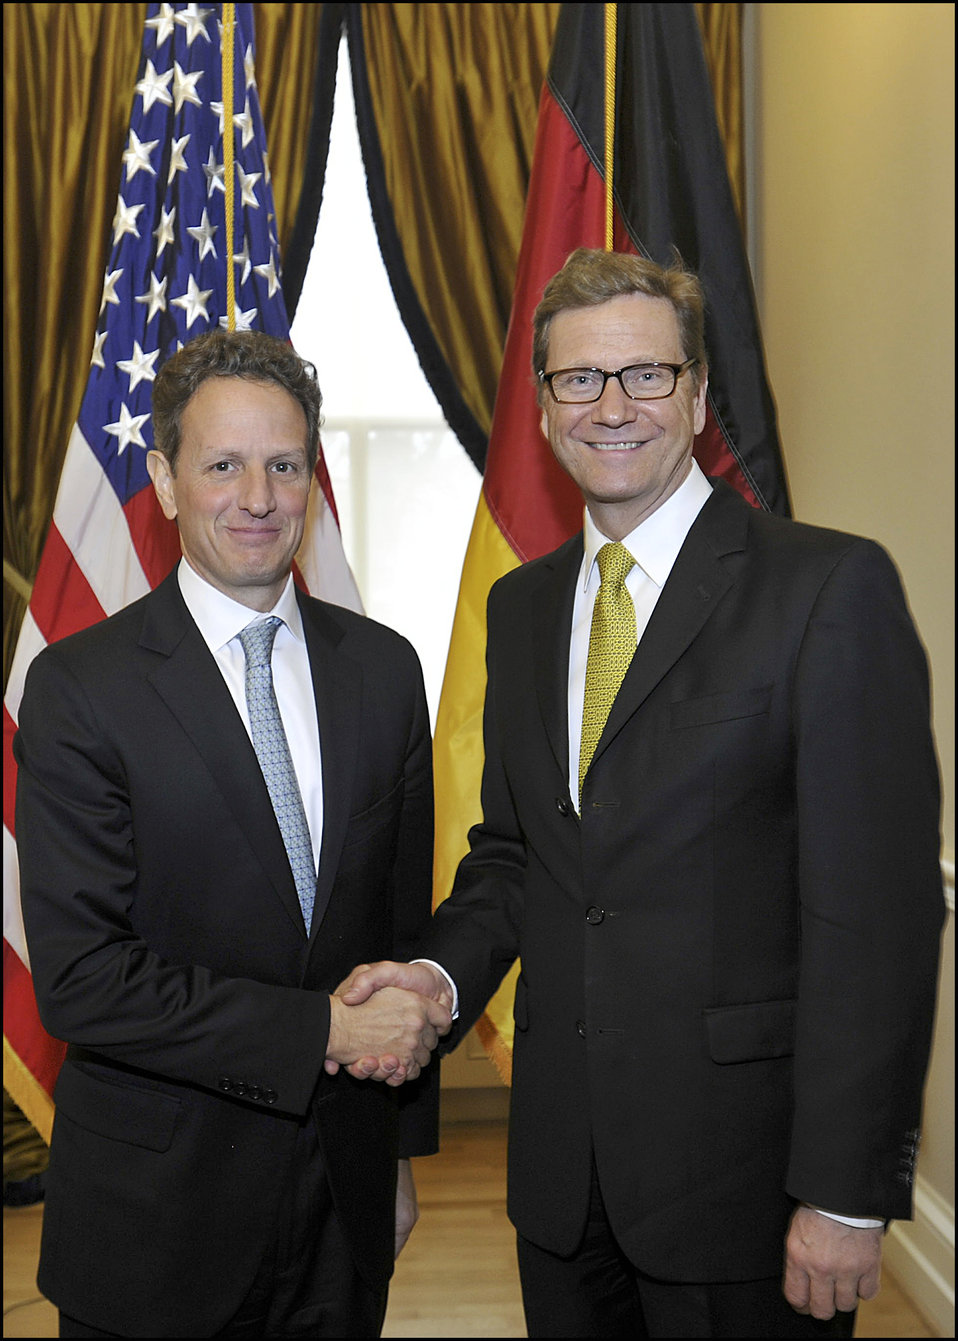 Secretary Geithner Meets with German Foreign Minister Guido Westerwelle